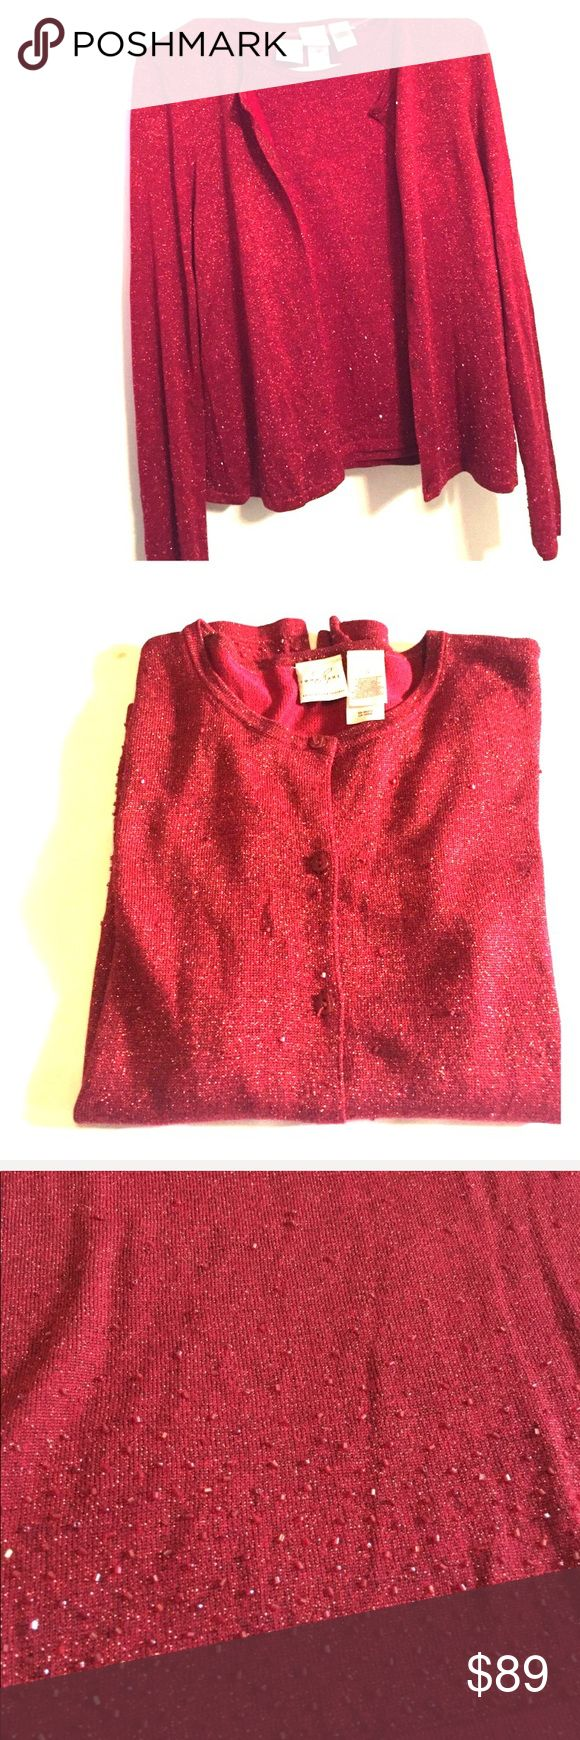 Emma James Shell (M) & Cardigan (S) Listing: Shell & Cardigan   Brand:  Emma James   Color: Red   Size: Shell-Medium & Cardigan-Small   Condition: EUC  ❌Trades❌  ⚡️I ship lightening fast⚡️  **** Listing #S4200  *Add this listing to a bundle so I can send you a private offer  🎉Discounts with bundles🎉 Emma James Sweaters Cardigans